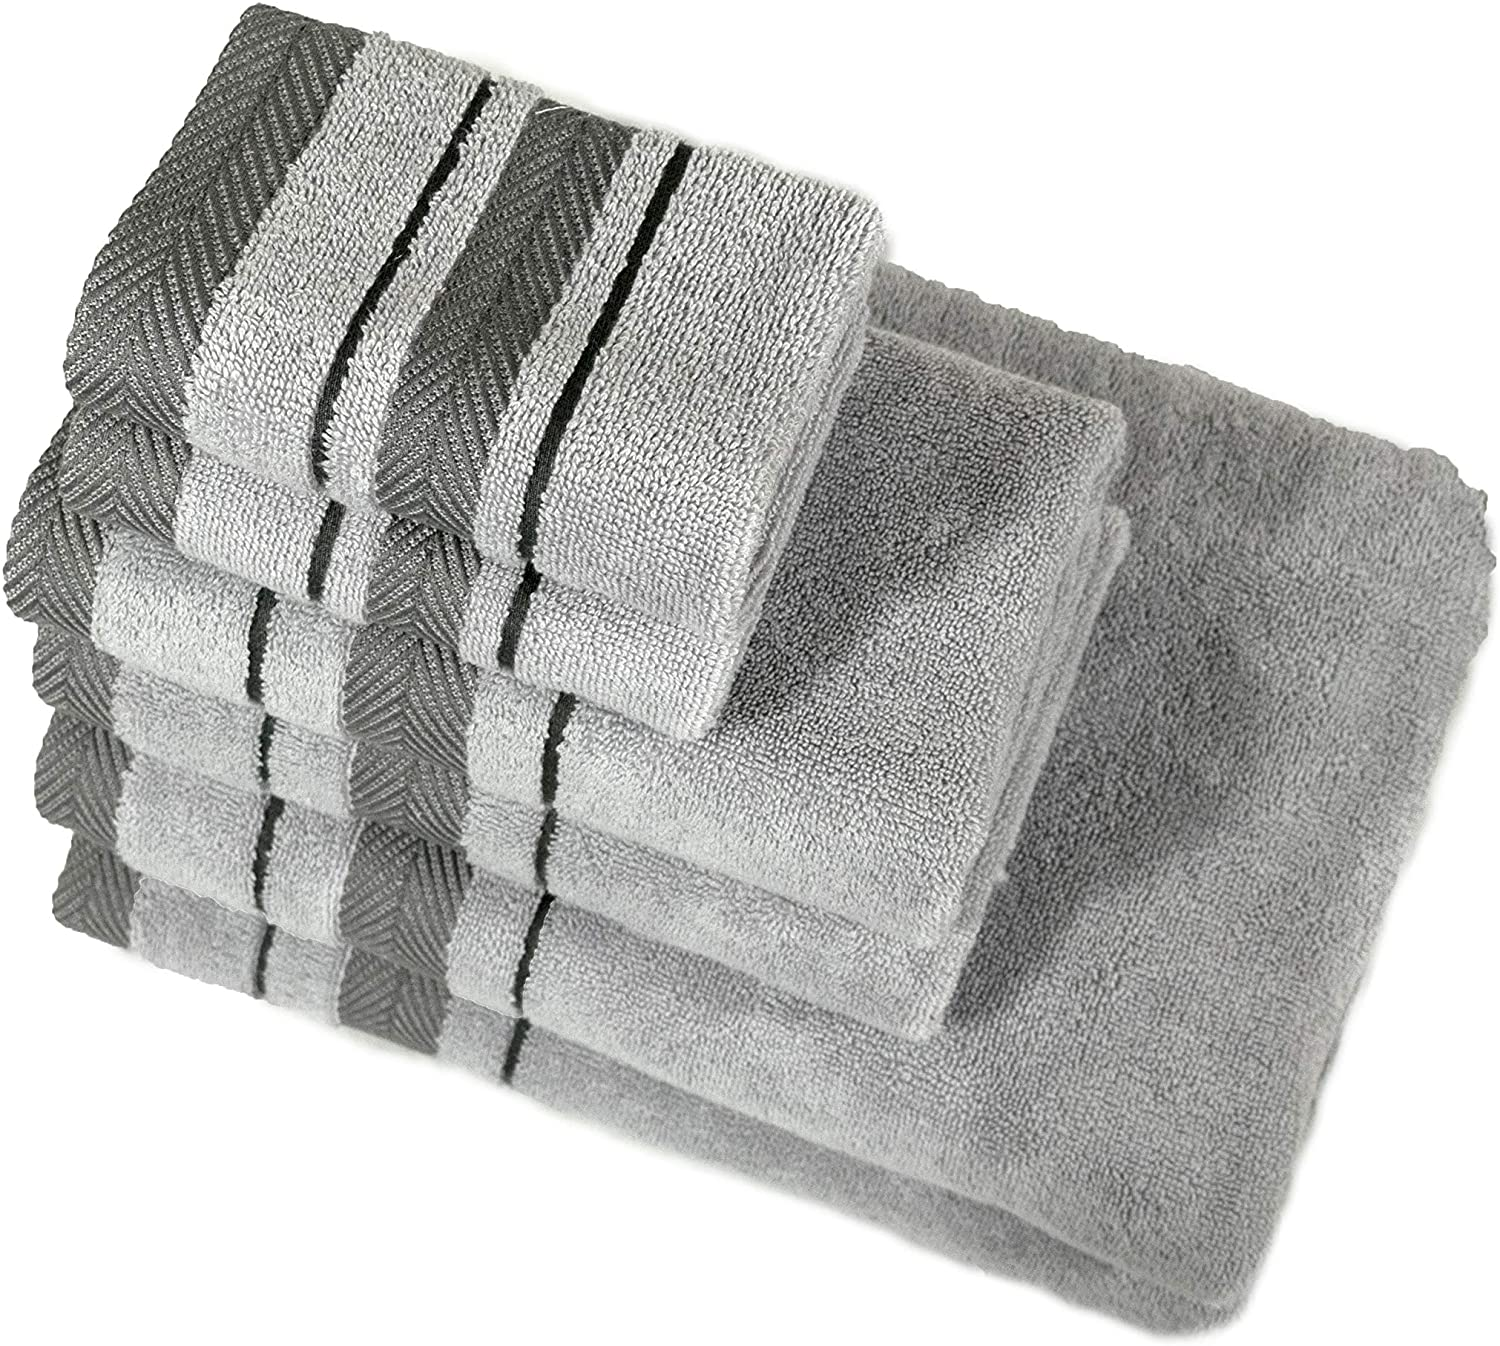 6 Piece Towel Set, Combed Cotton 650 GSM, Ultra Soft Luxurious Gray Color